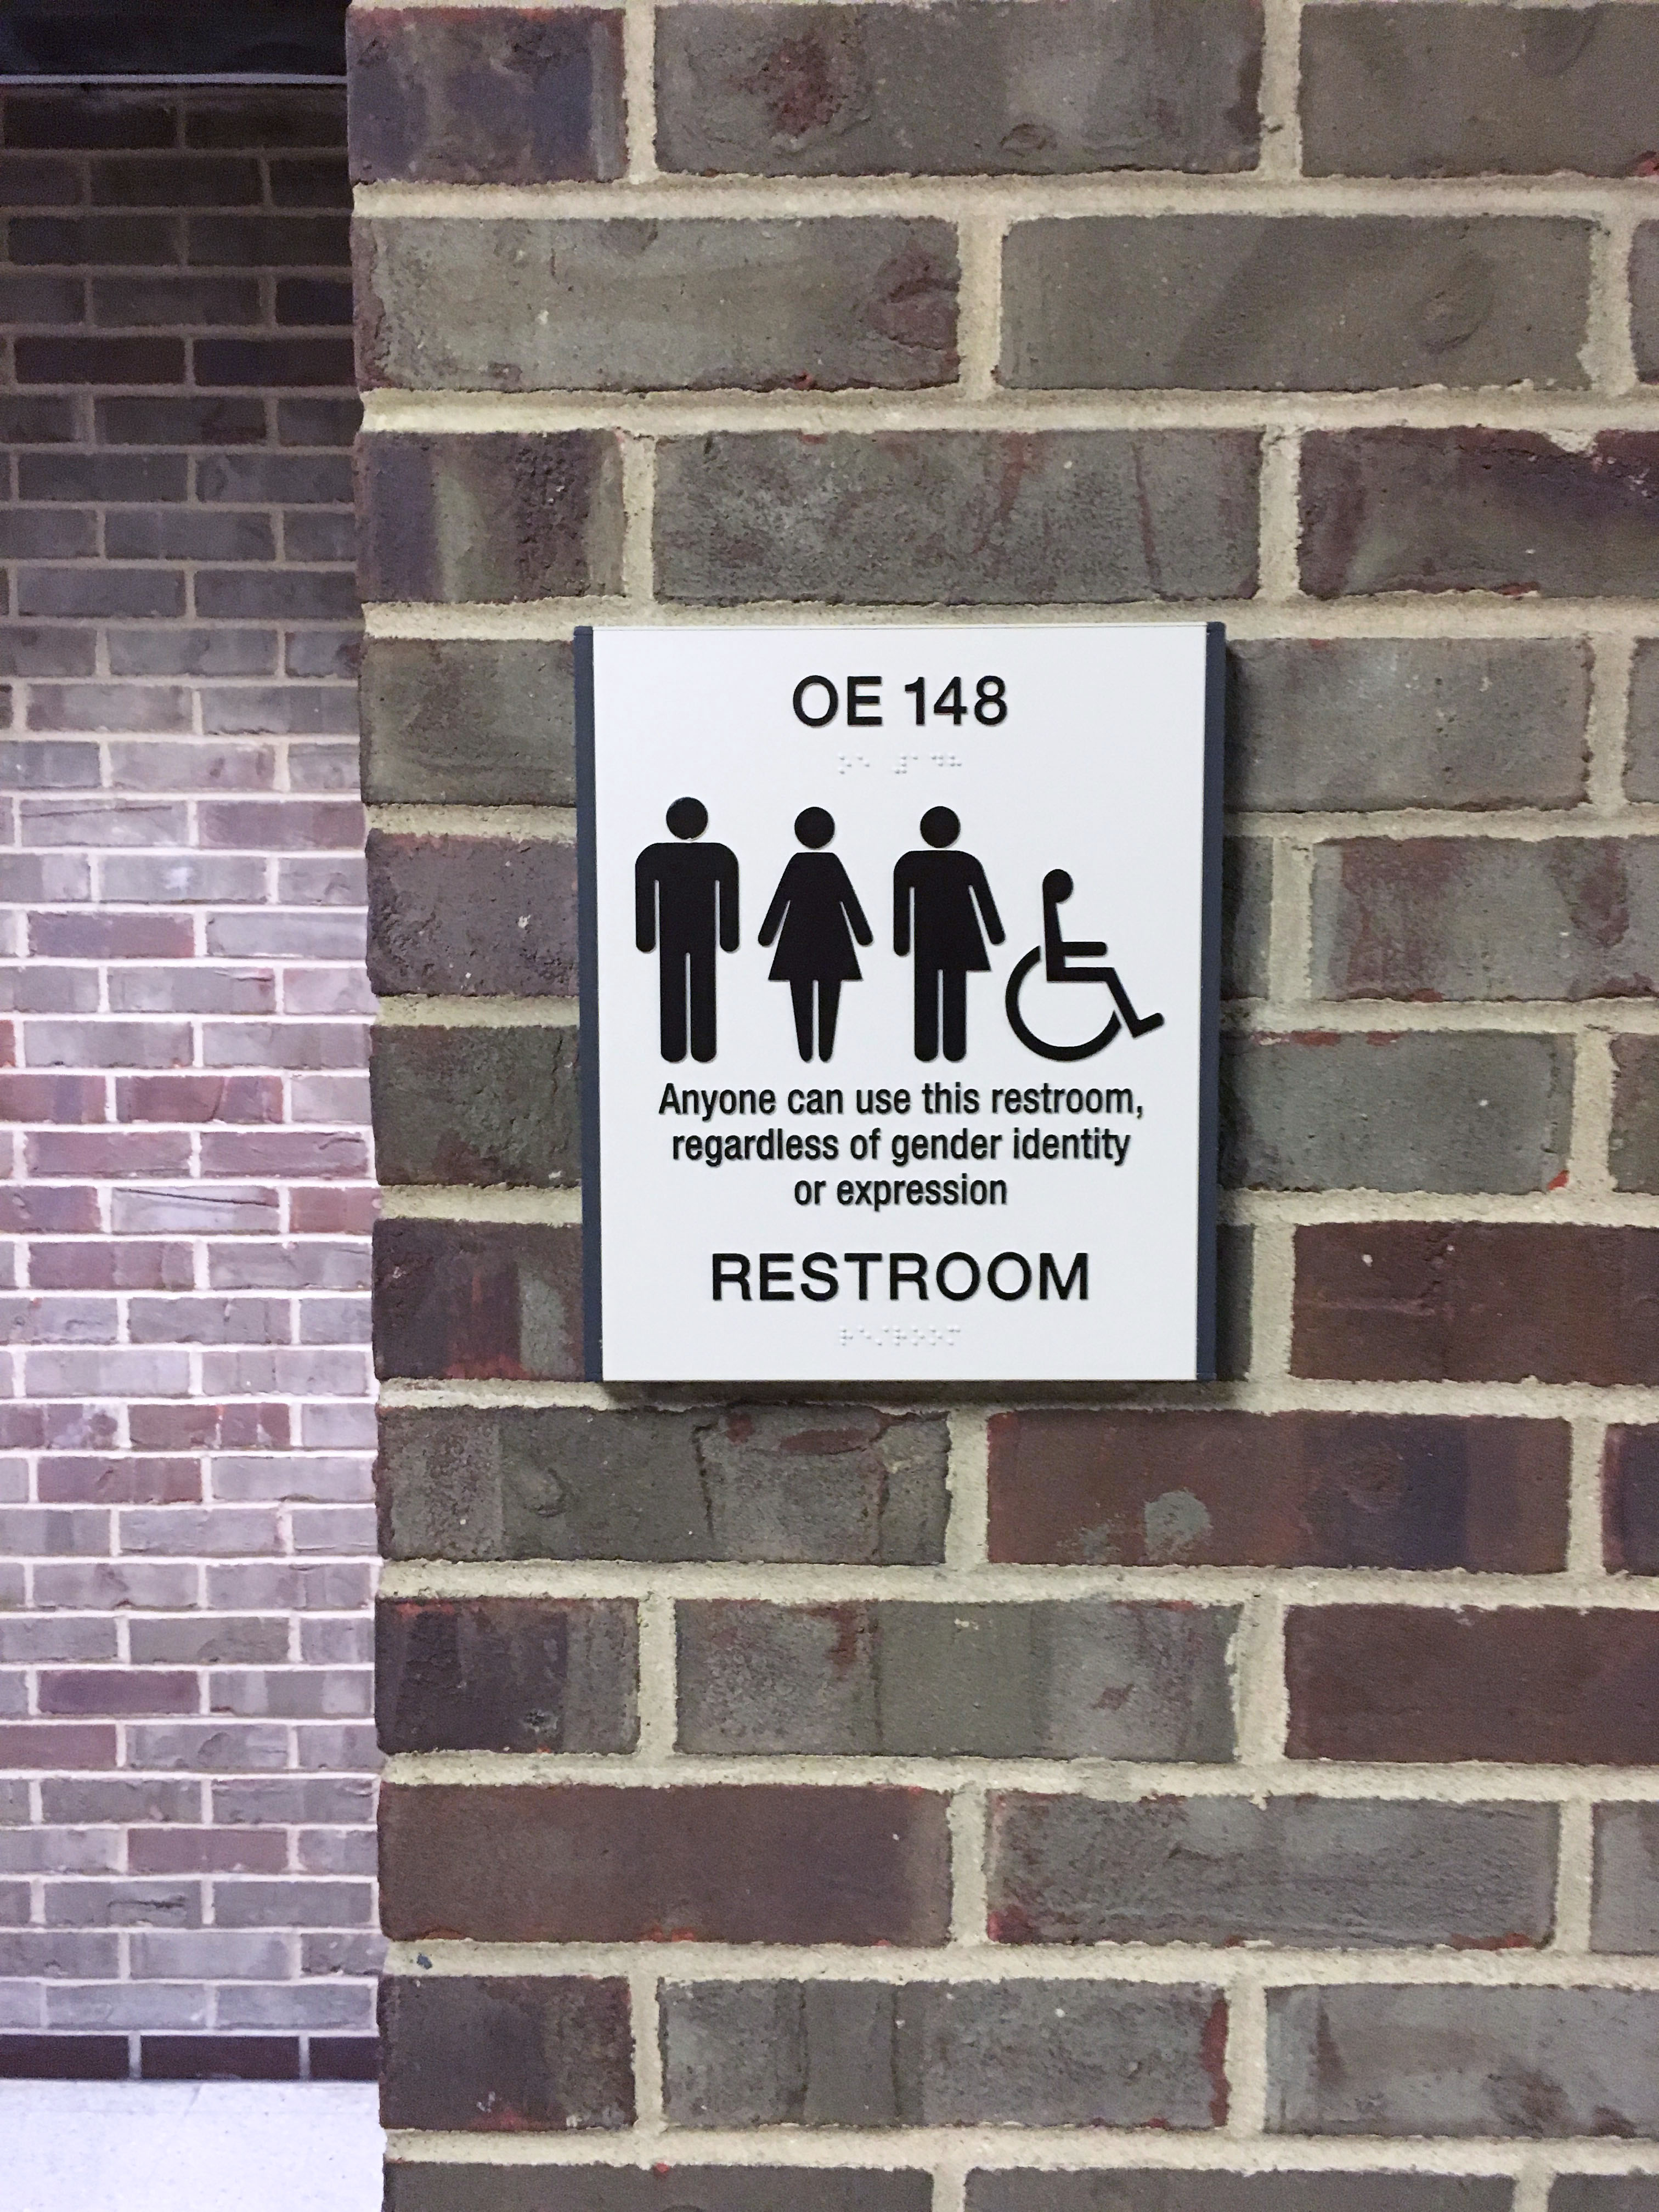 All-inclusive restroom sign